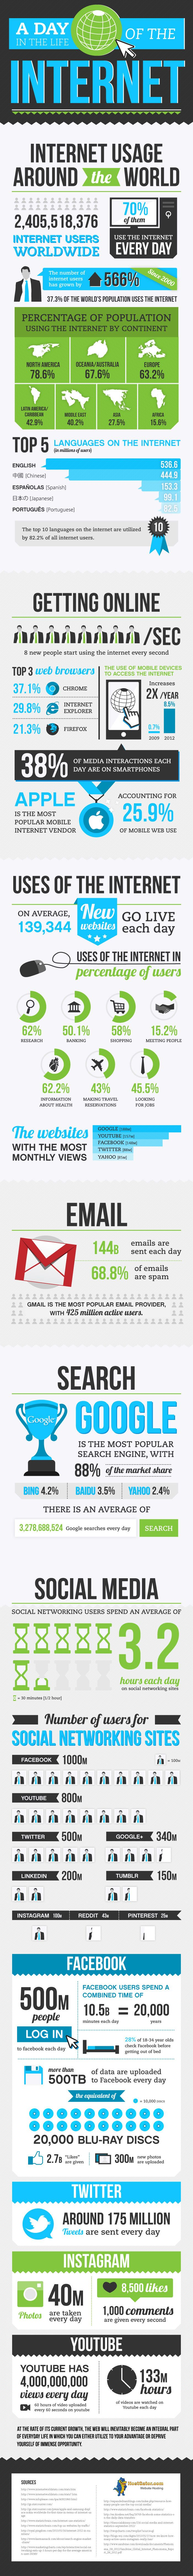 A Day In The Life Of The Internet | #infographic #internet